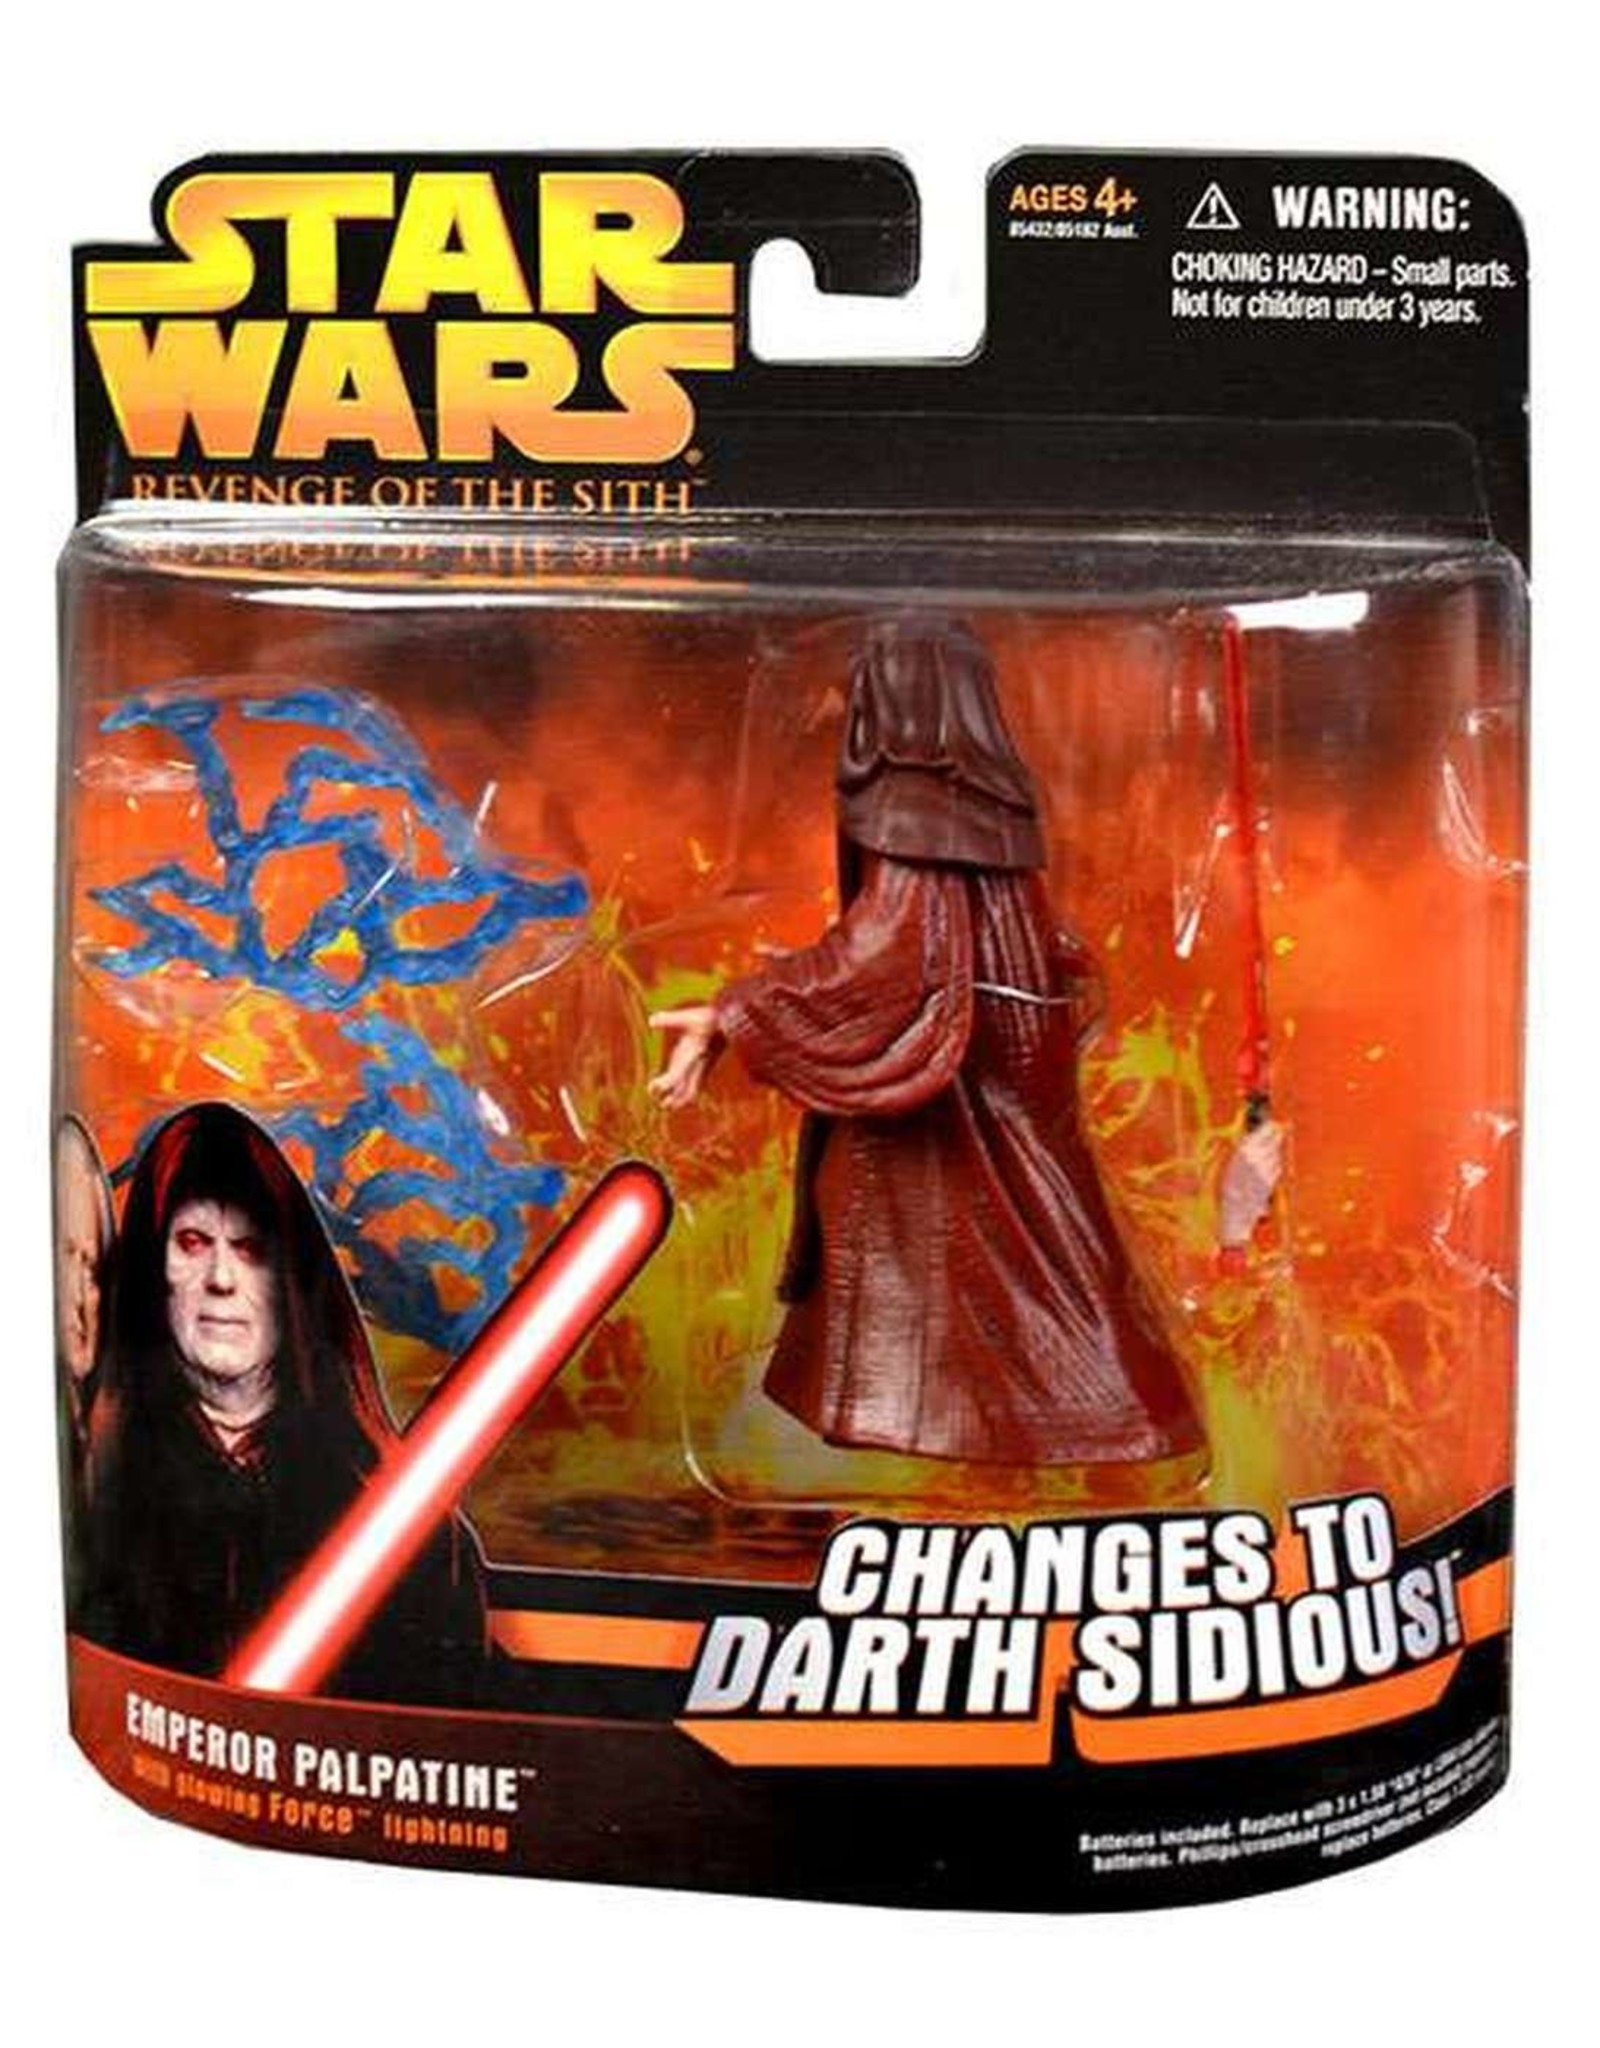 Star Wars Revenge Of The Sith Emperor Palpatine Action Figure Glowing Force Lightning Big Bang Toys